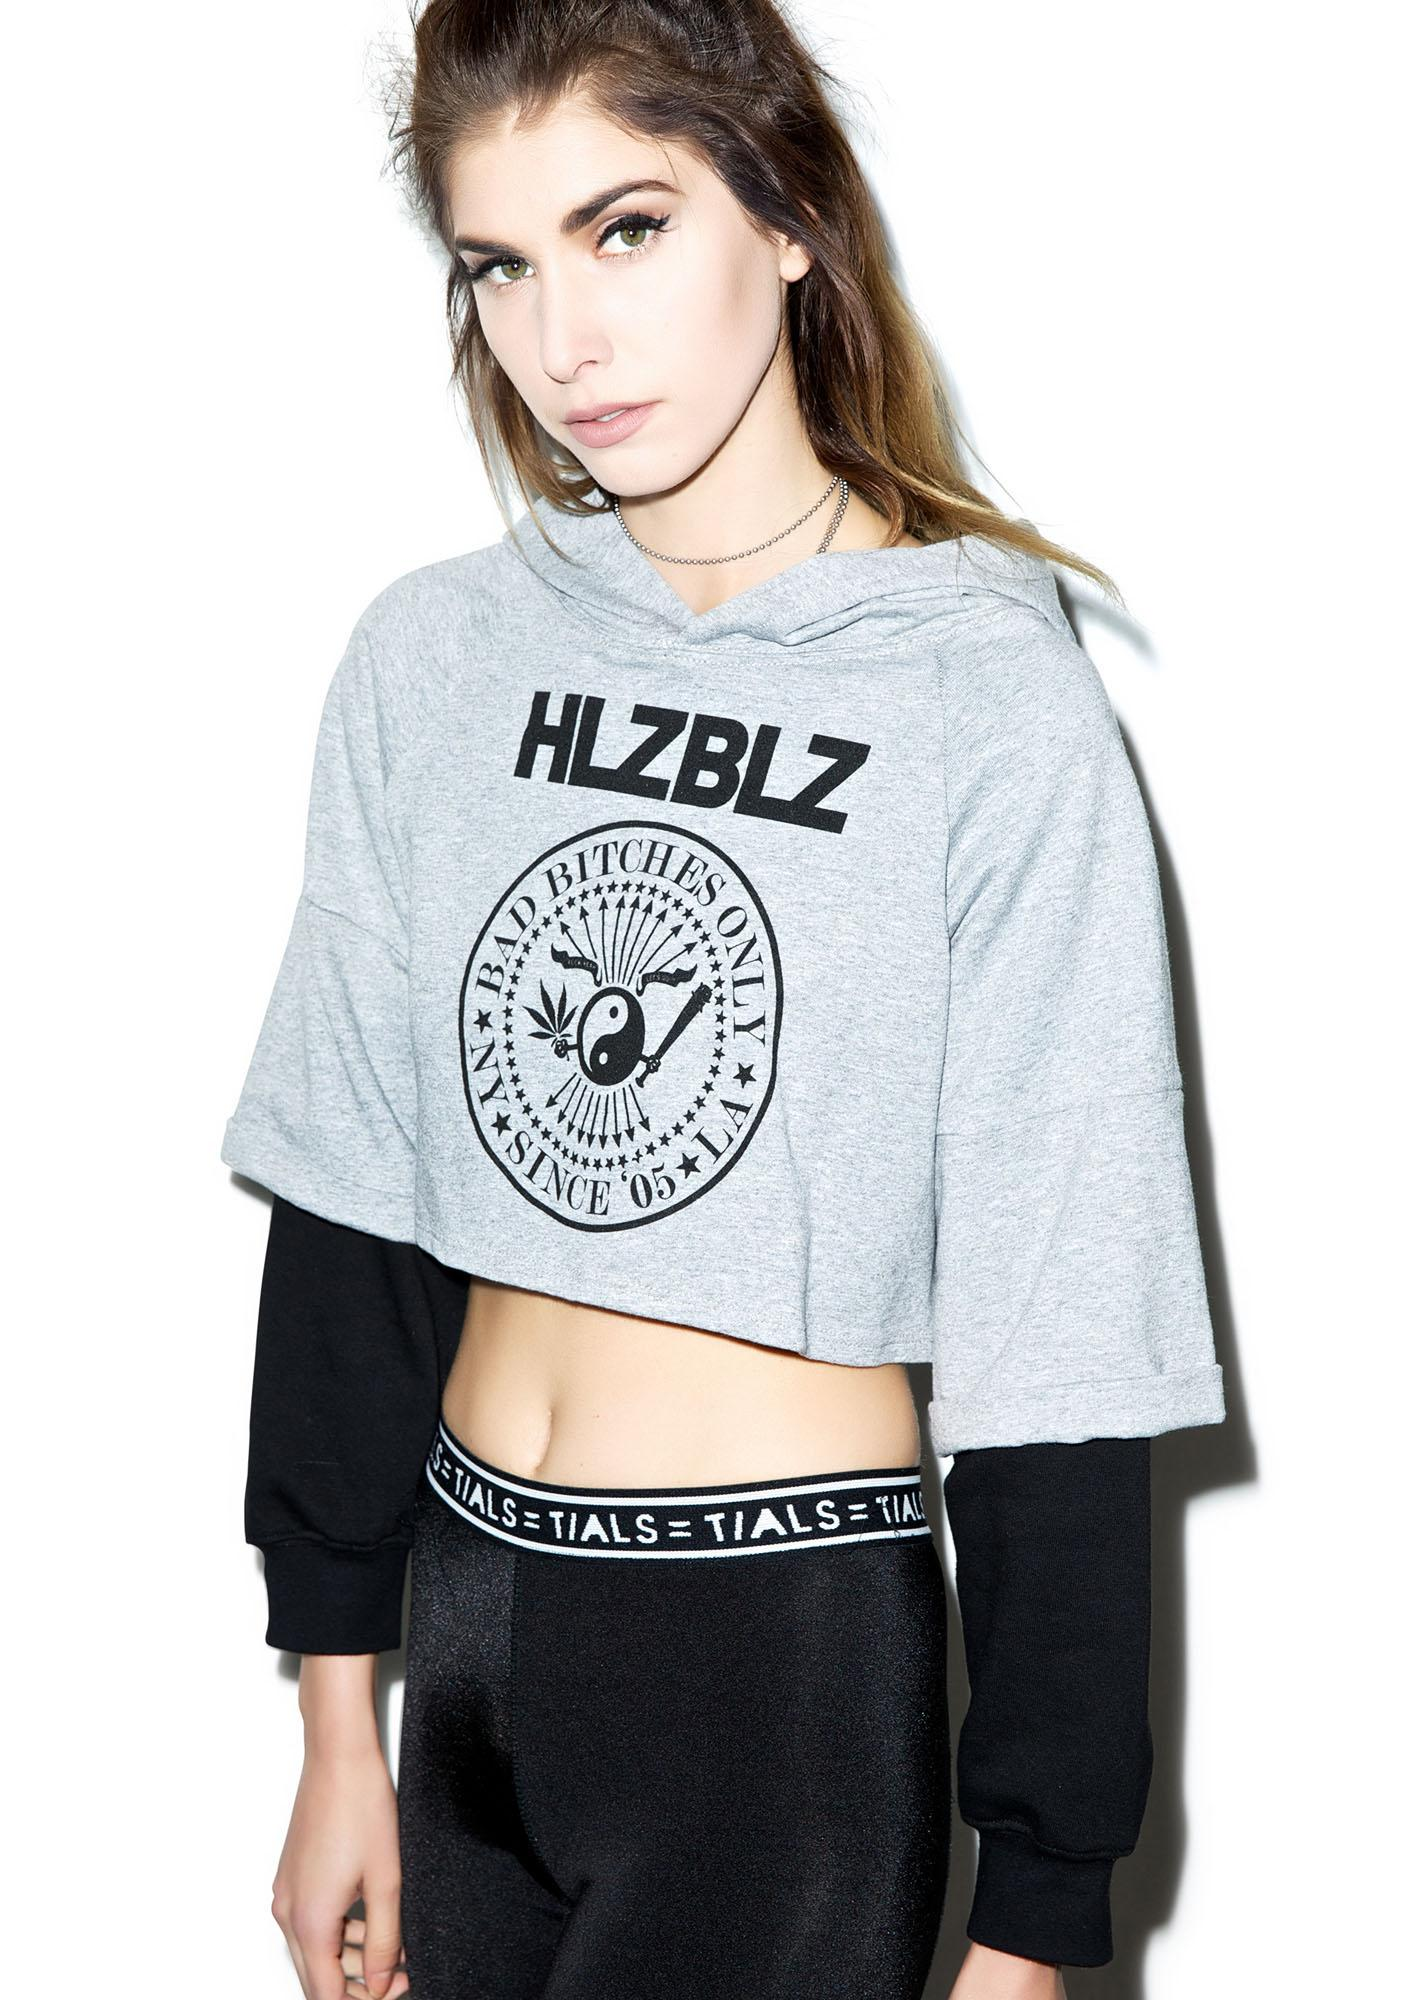 HLZBLZ Bad NY Bitches Hooded Crop Top